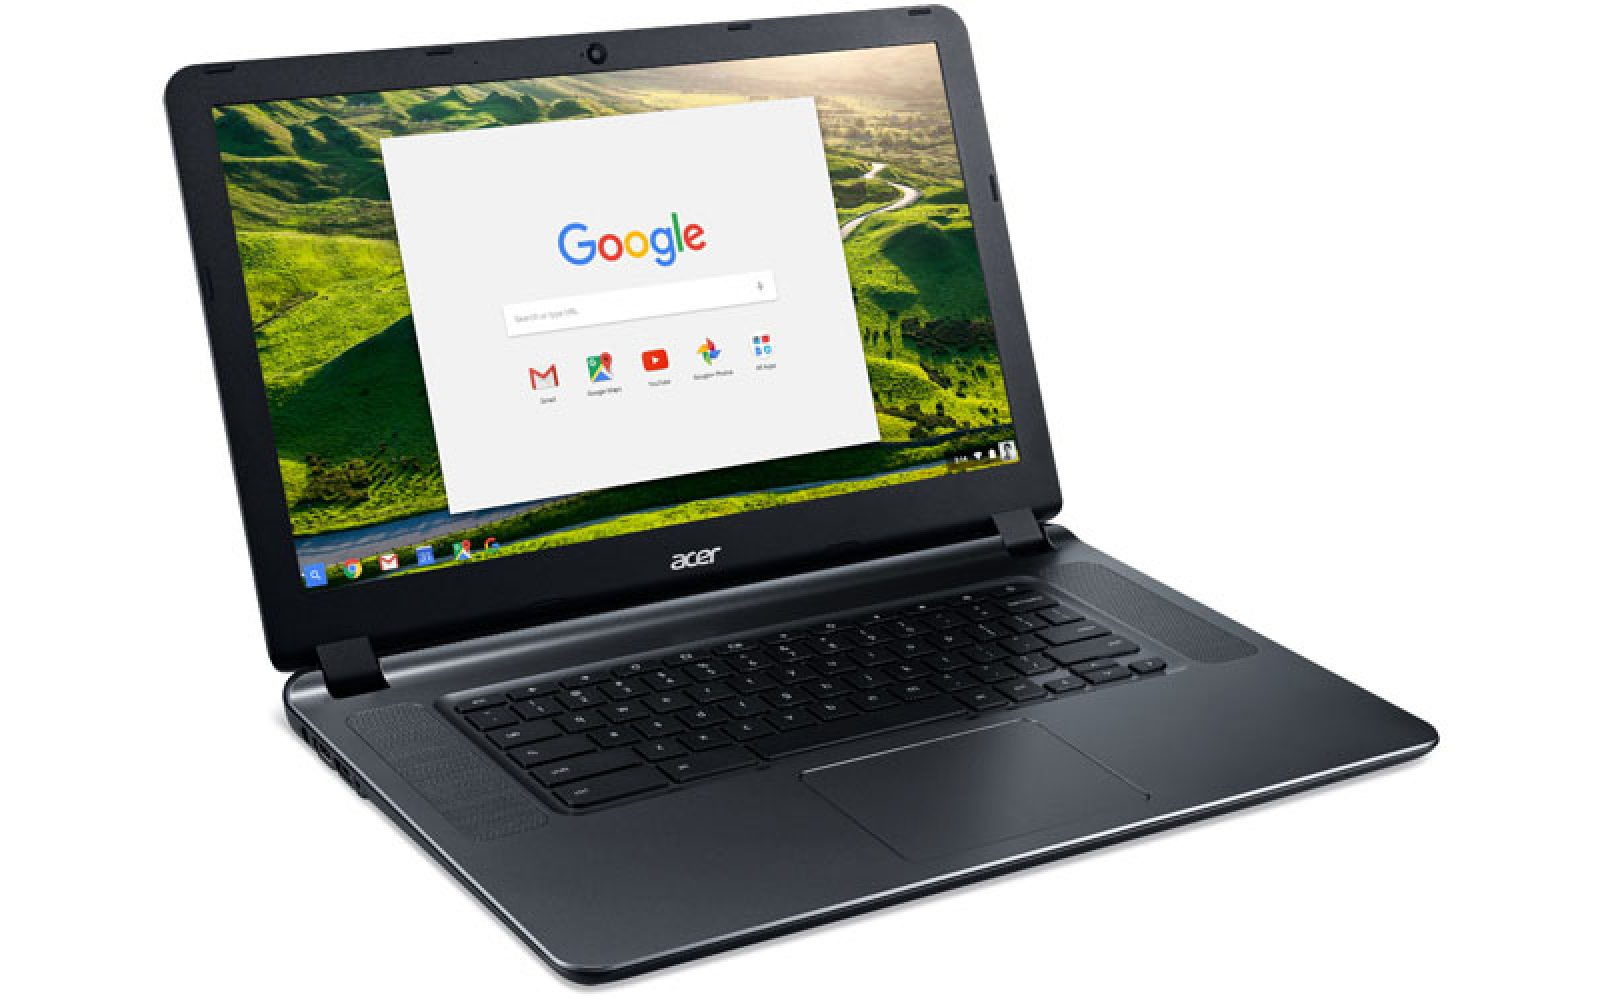 Acer Launches 199 15 Inch Chromebook With Claimed 12 Hour